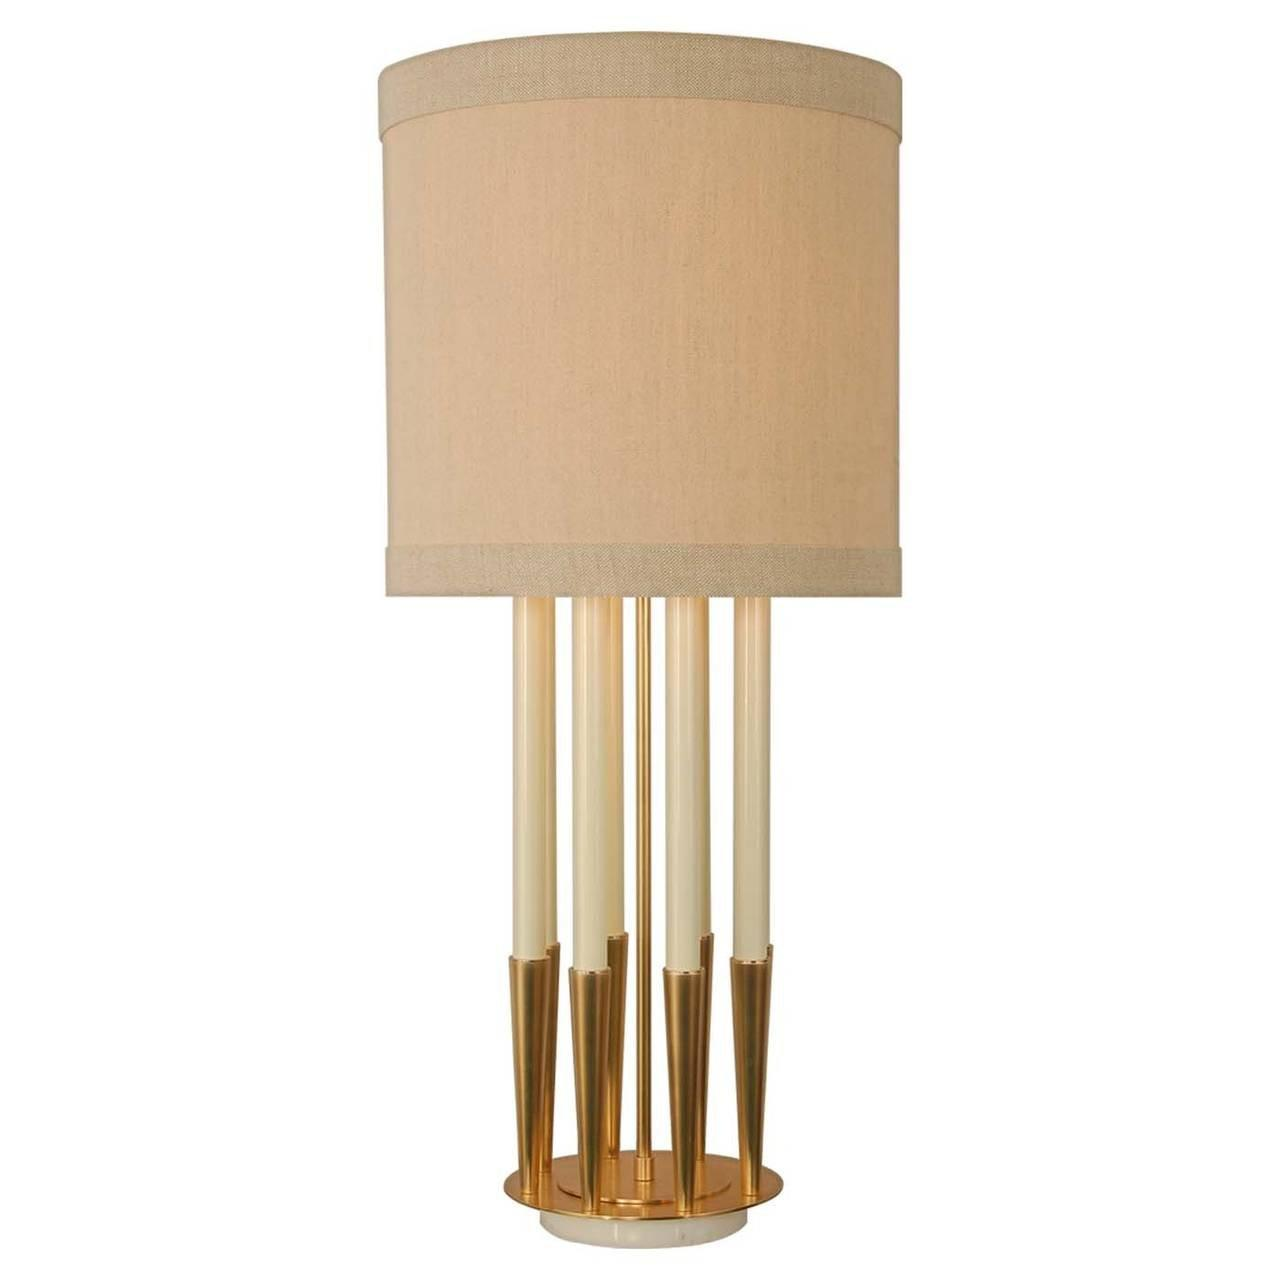 Image of: Candlestick Lamps With Shades